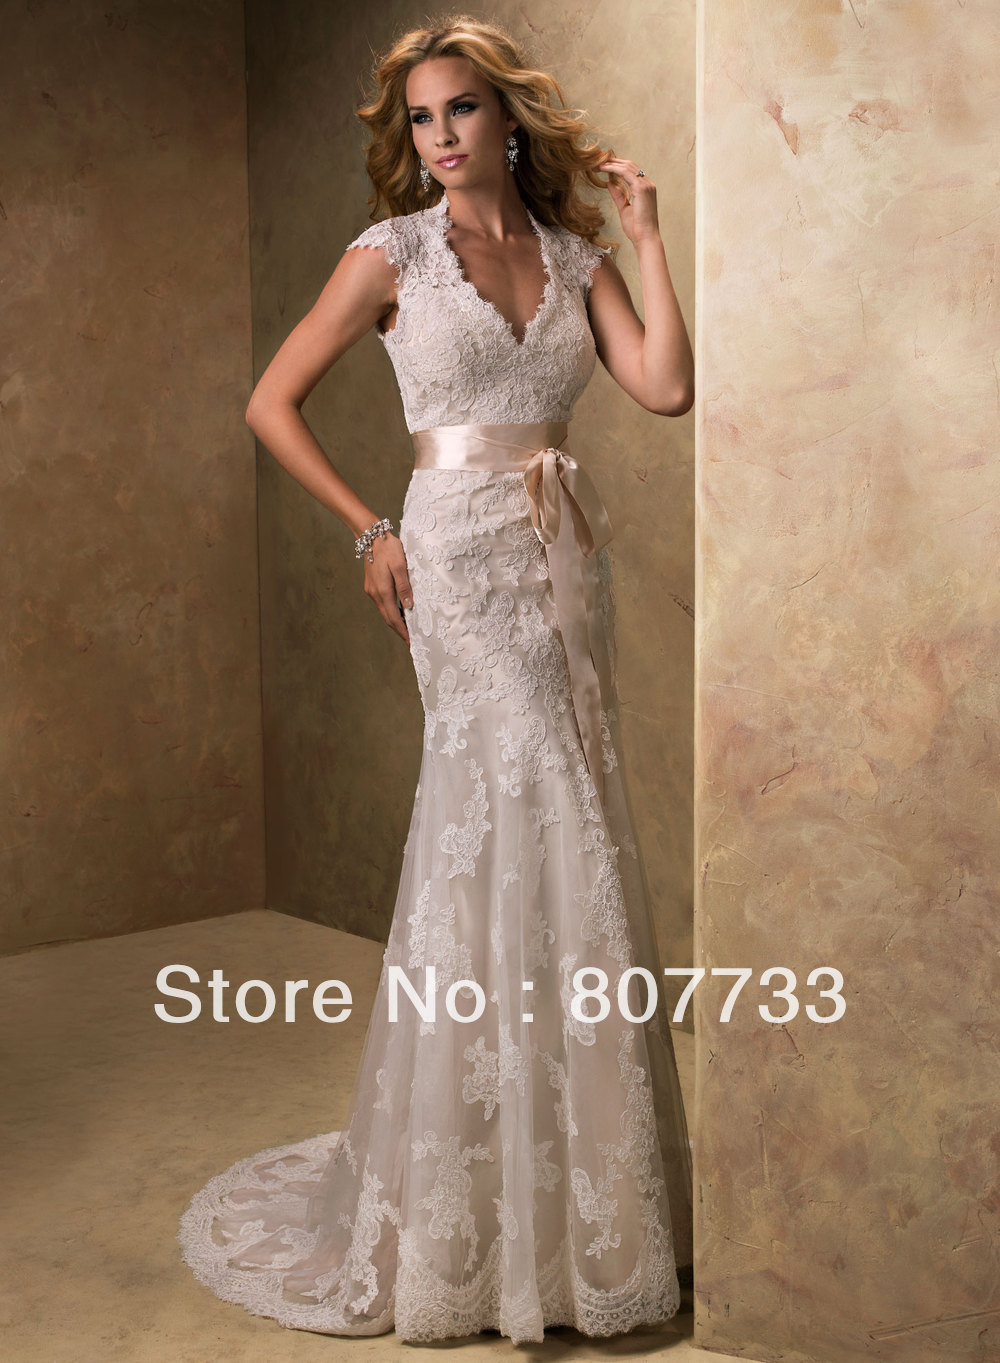 Tt82 Intricate Tiny Lace V Neck Backless Mermaid Wedding Dress In